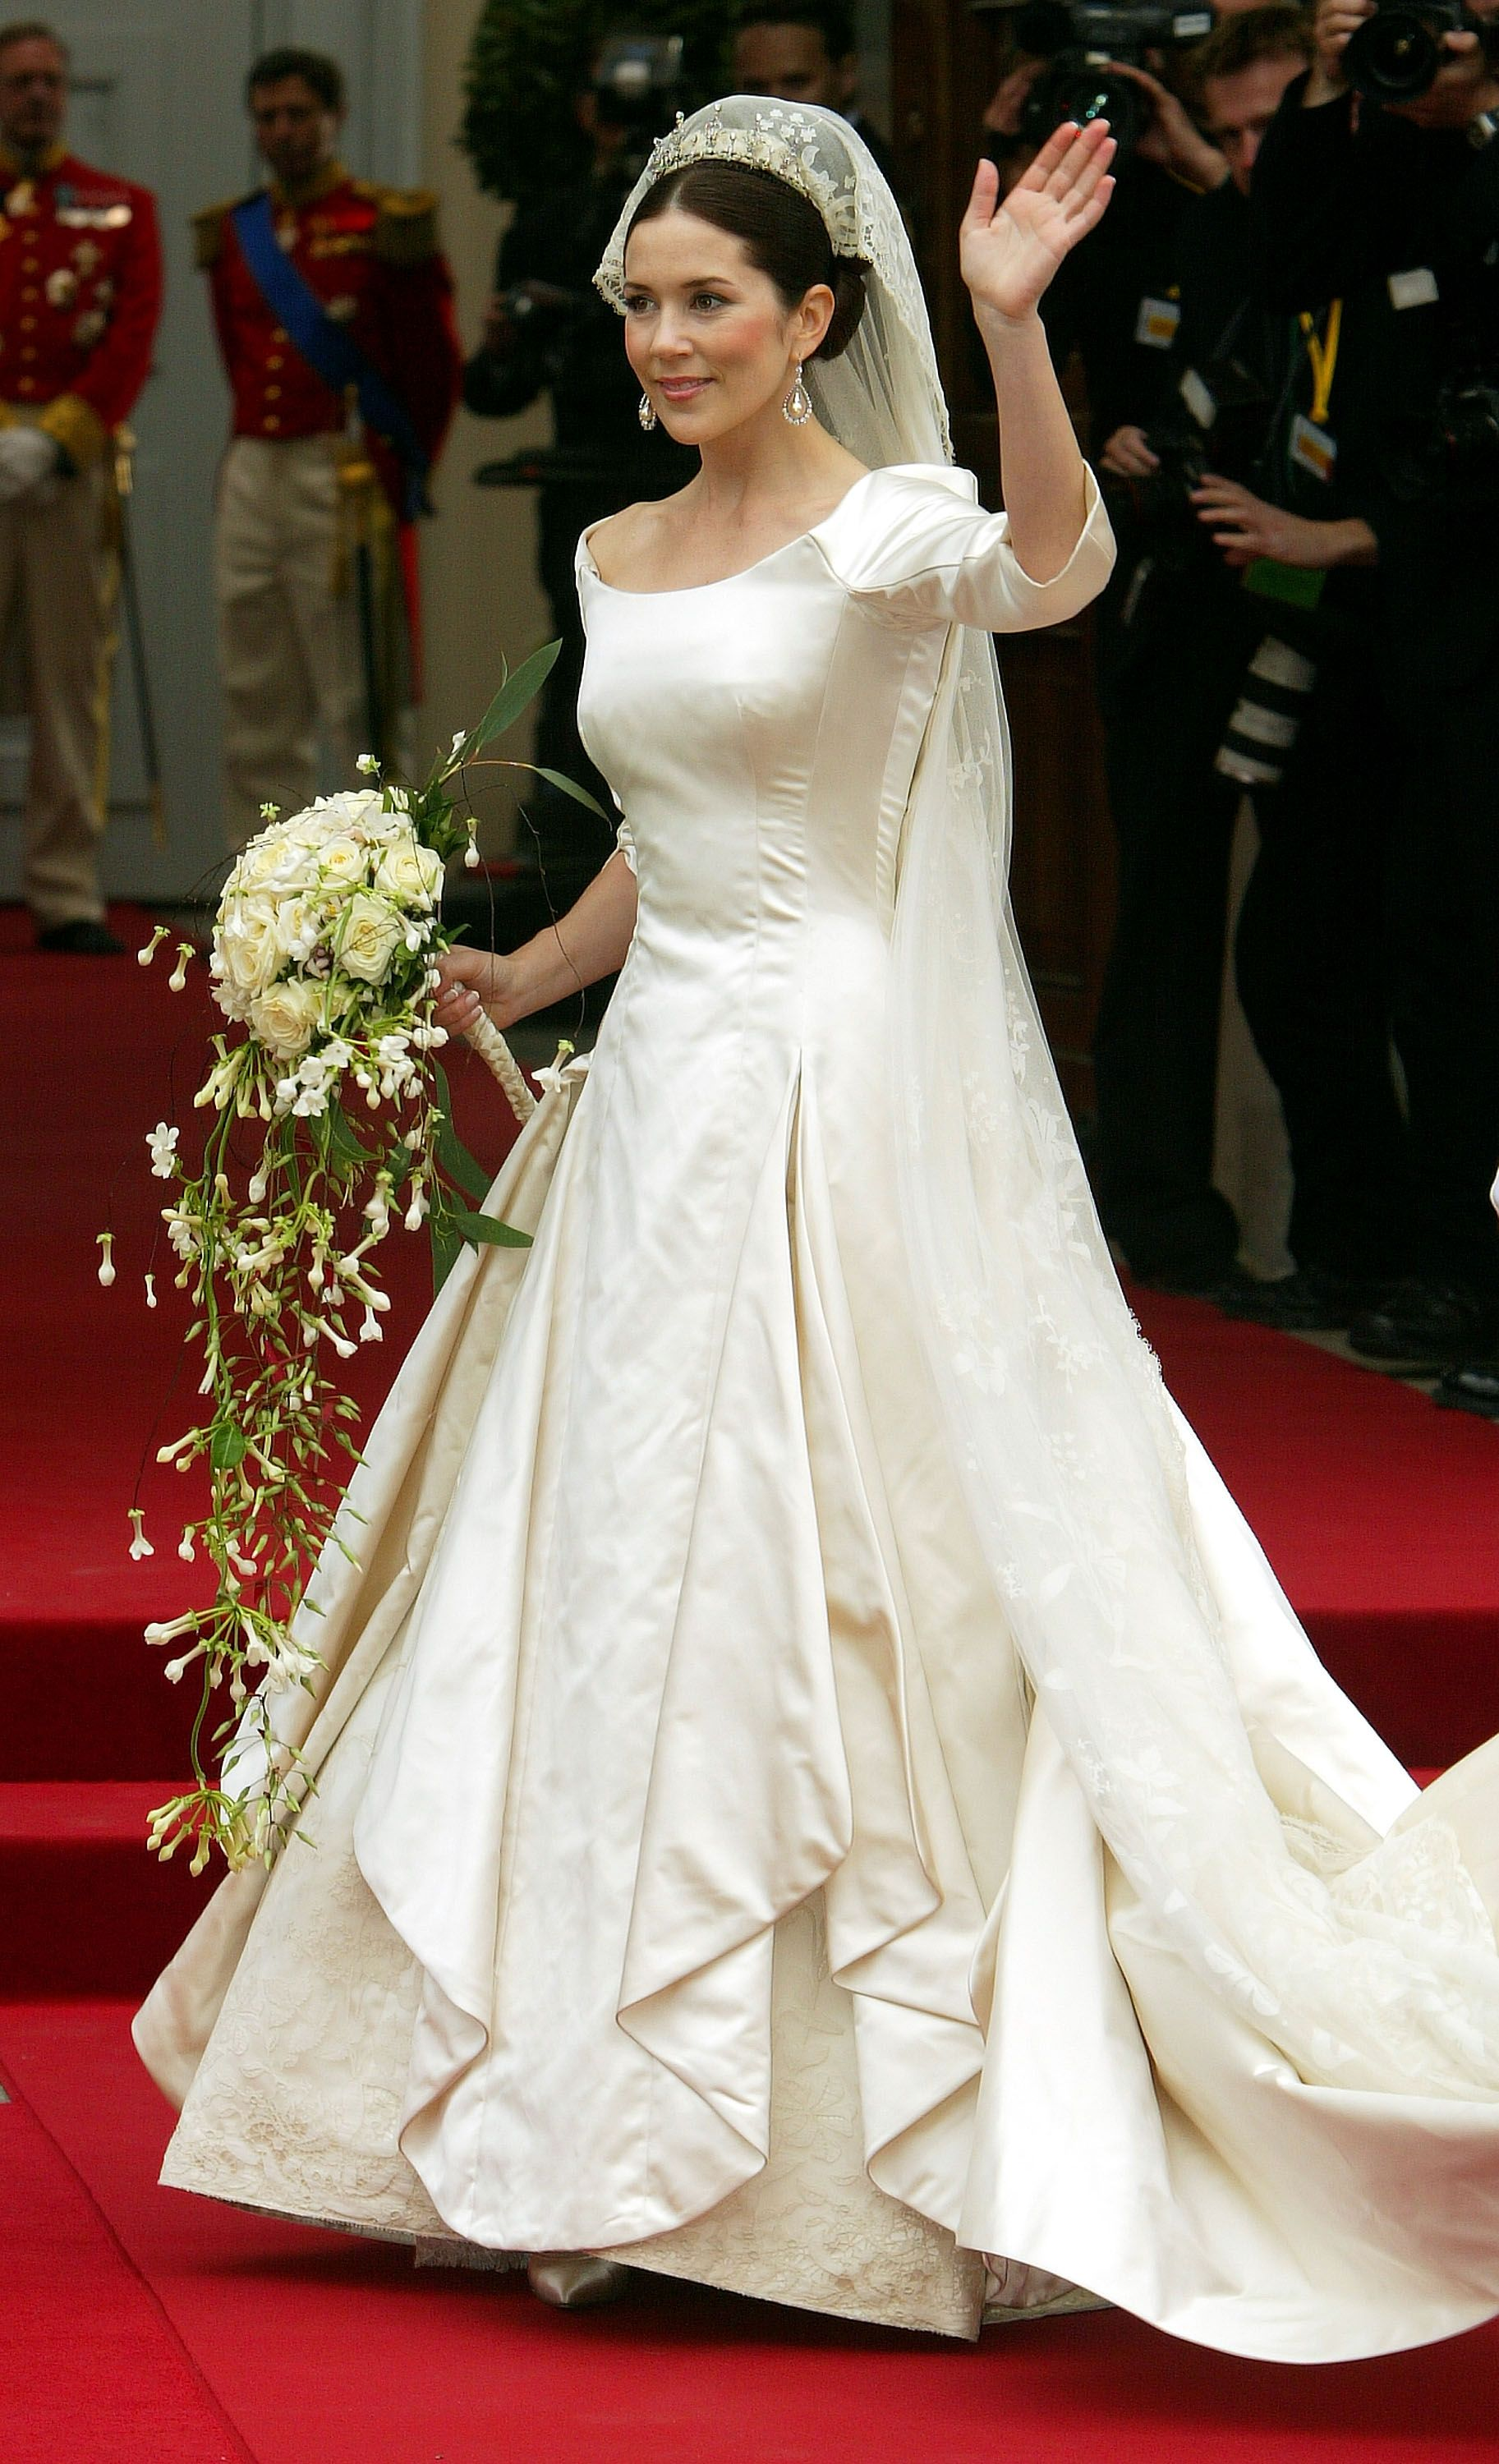 28 Best Royal Wedding Dresses of All Time - Royal Family Wedding Gowns